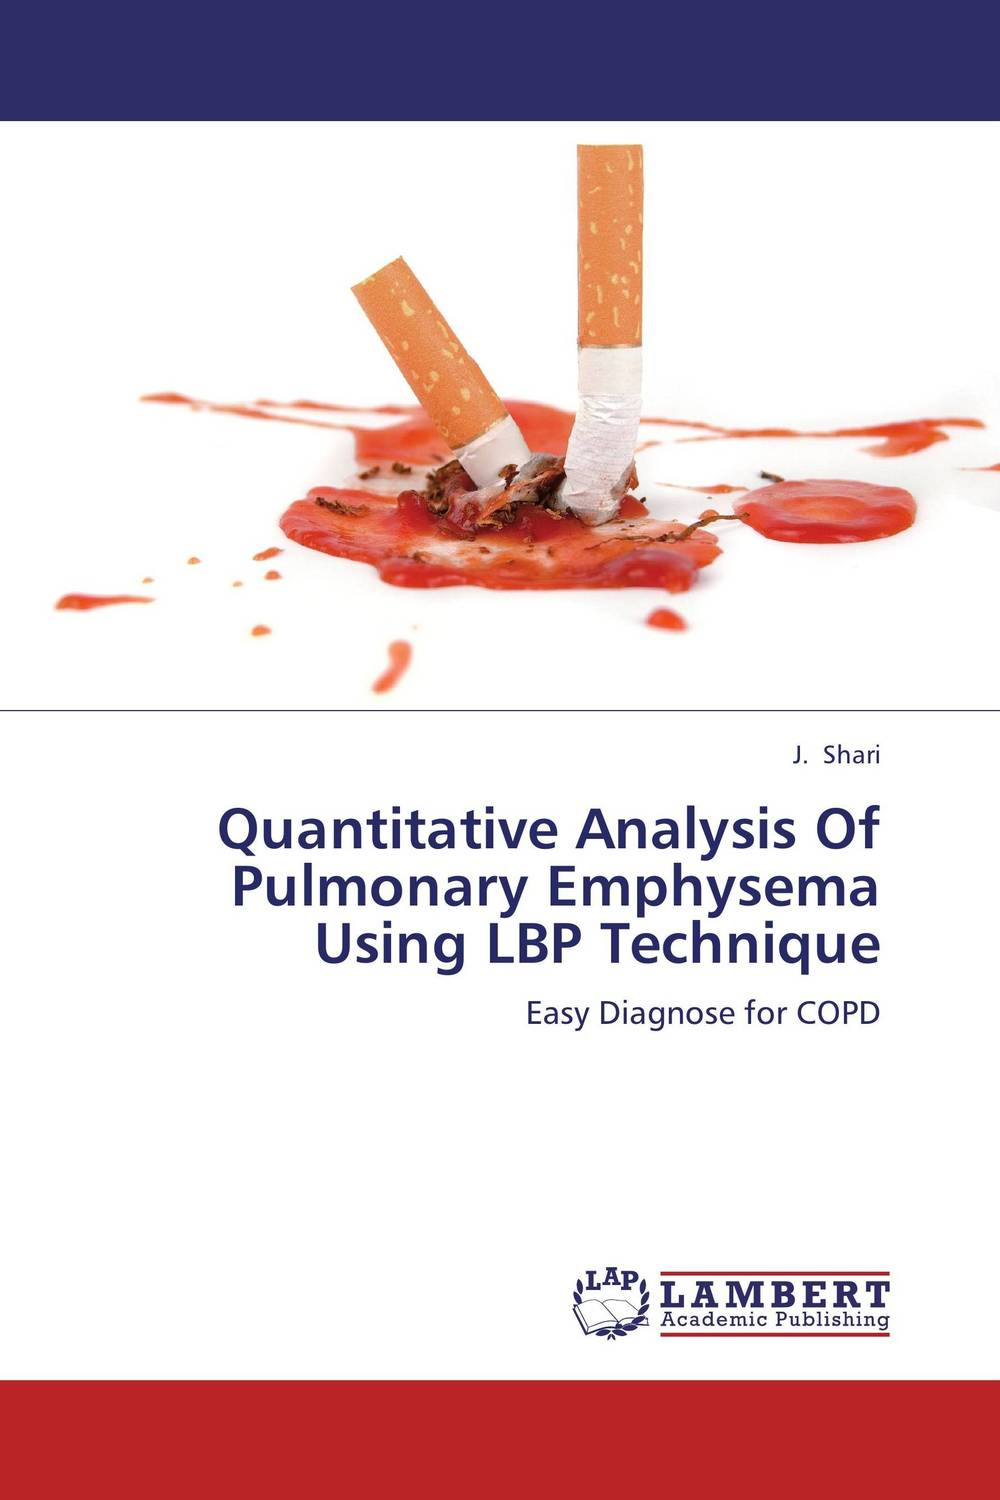 Quantitative Analysis Of Pulmonary Emphysema Using LBP Technique a novel separation technique using hydrotropes